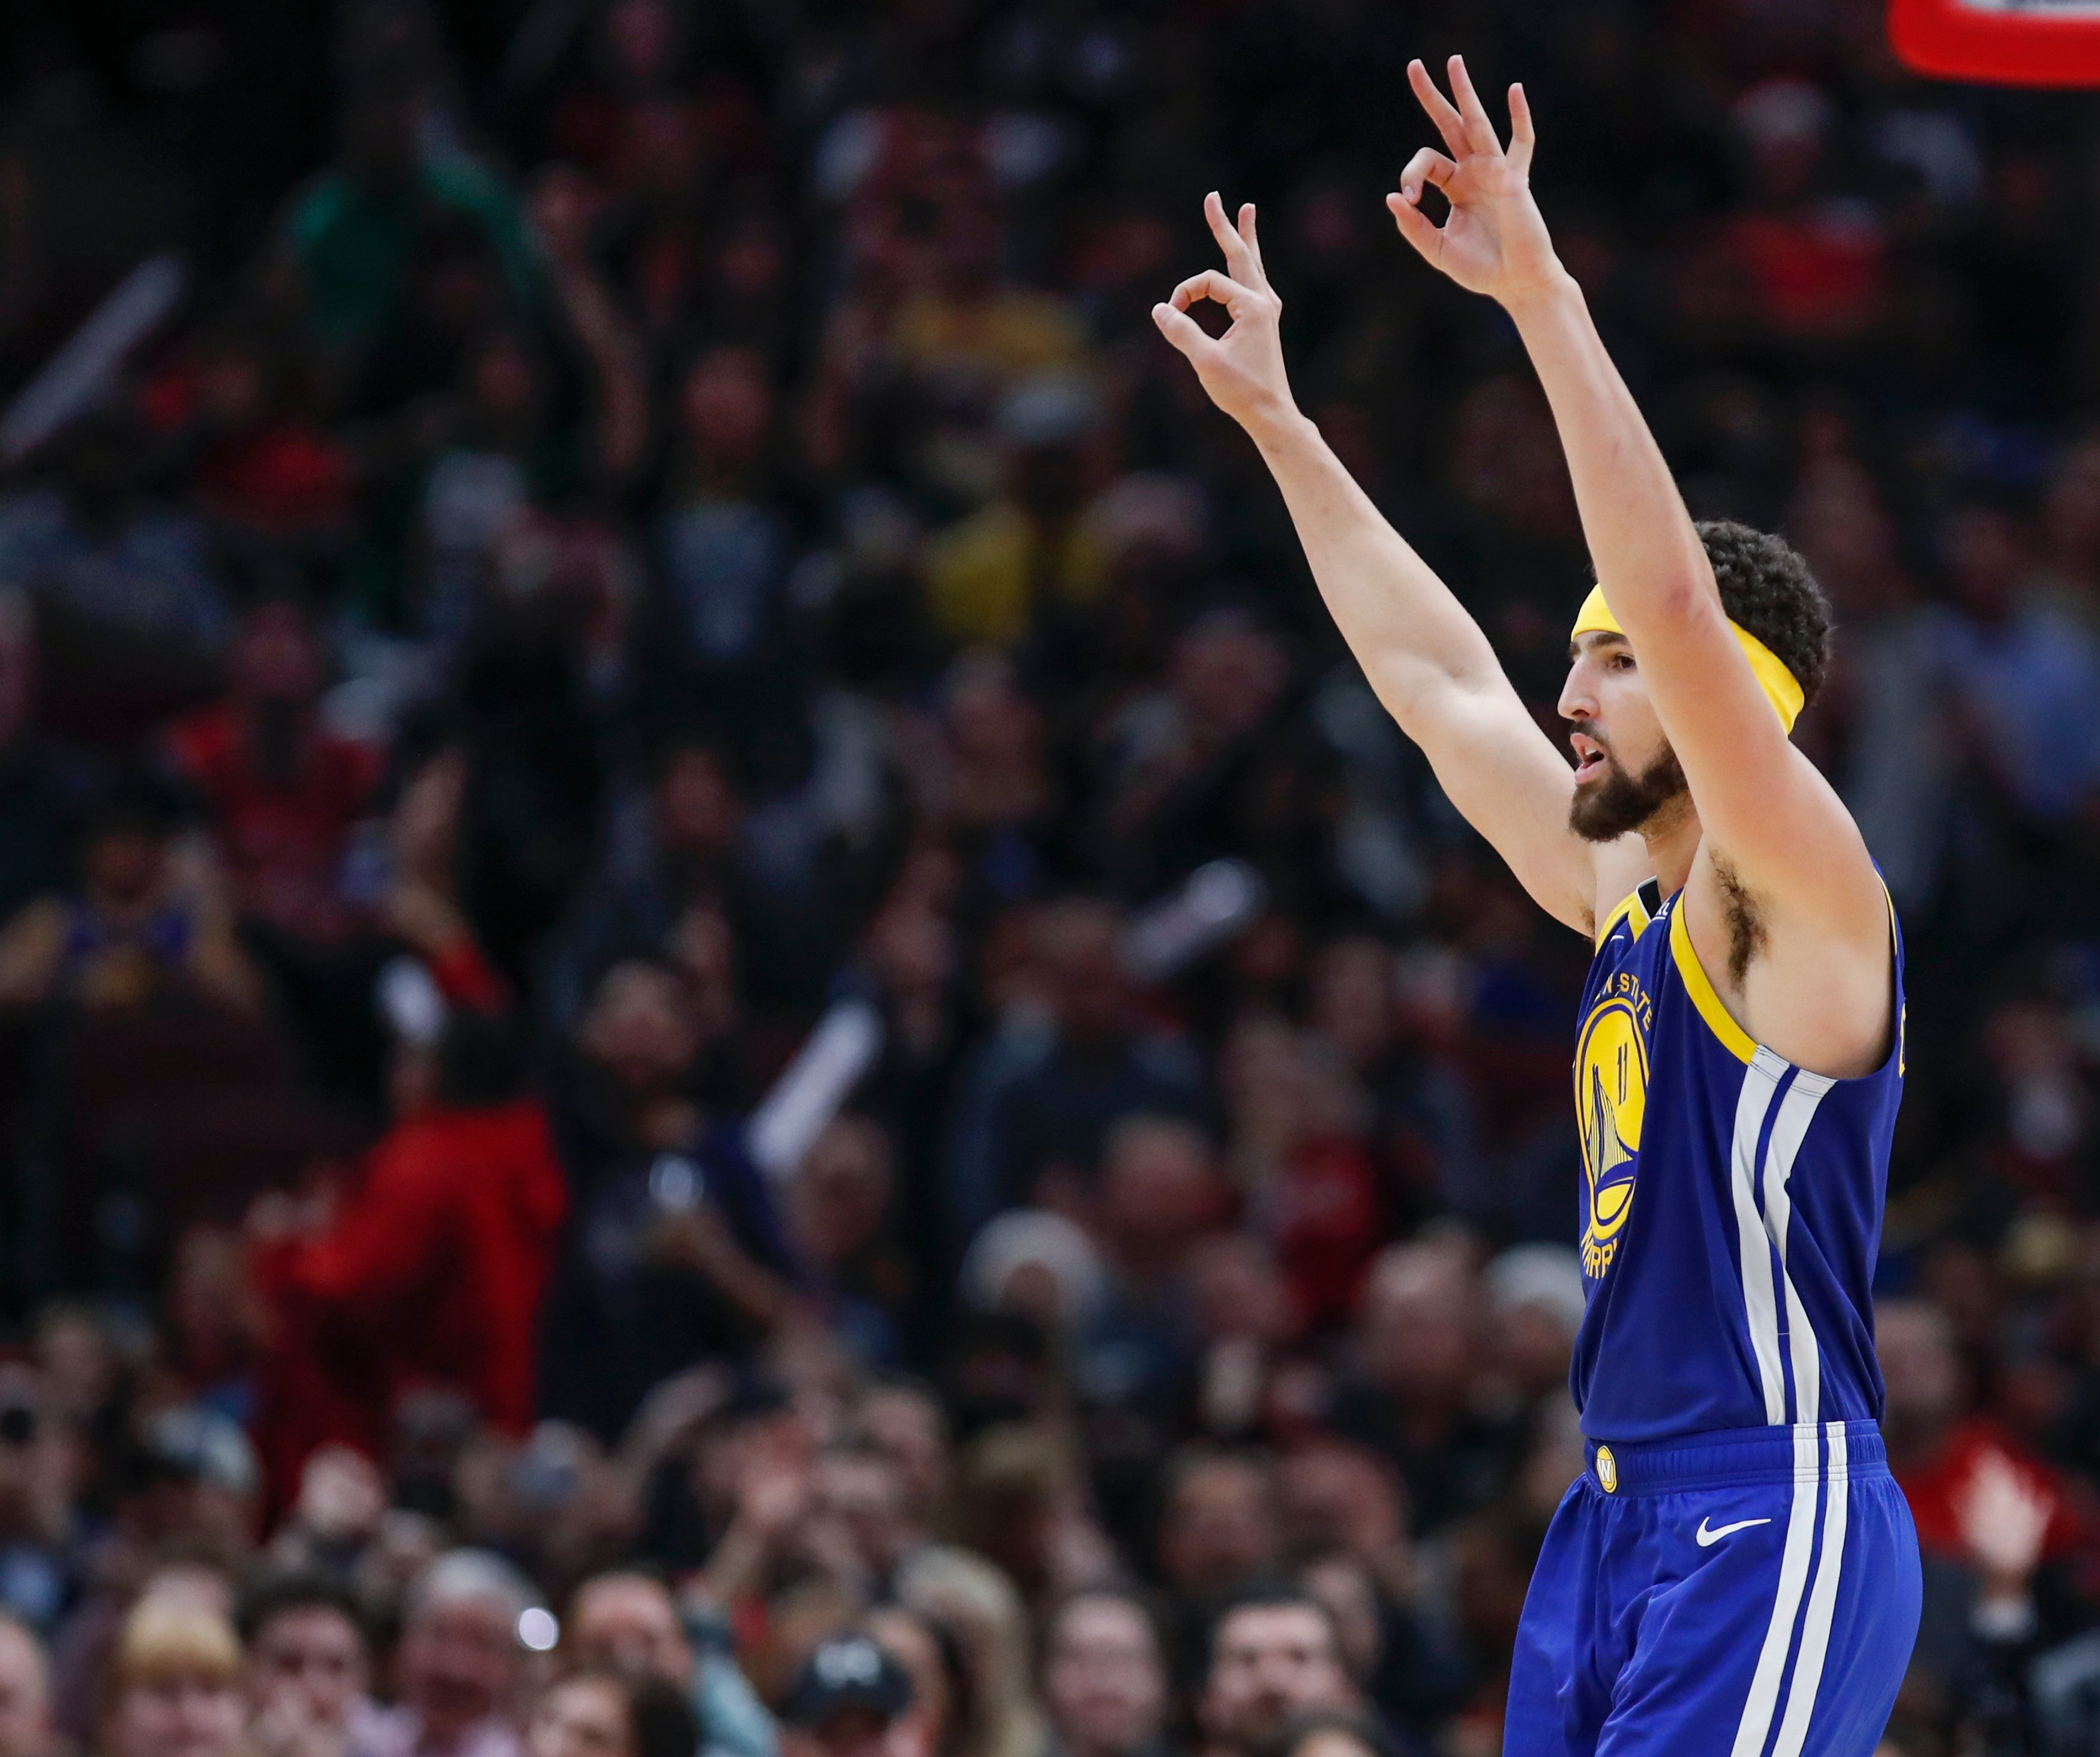 El imposible récord de Klay Thompson en la NBA